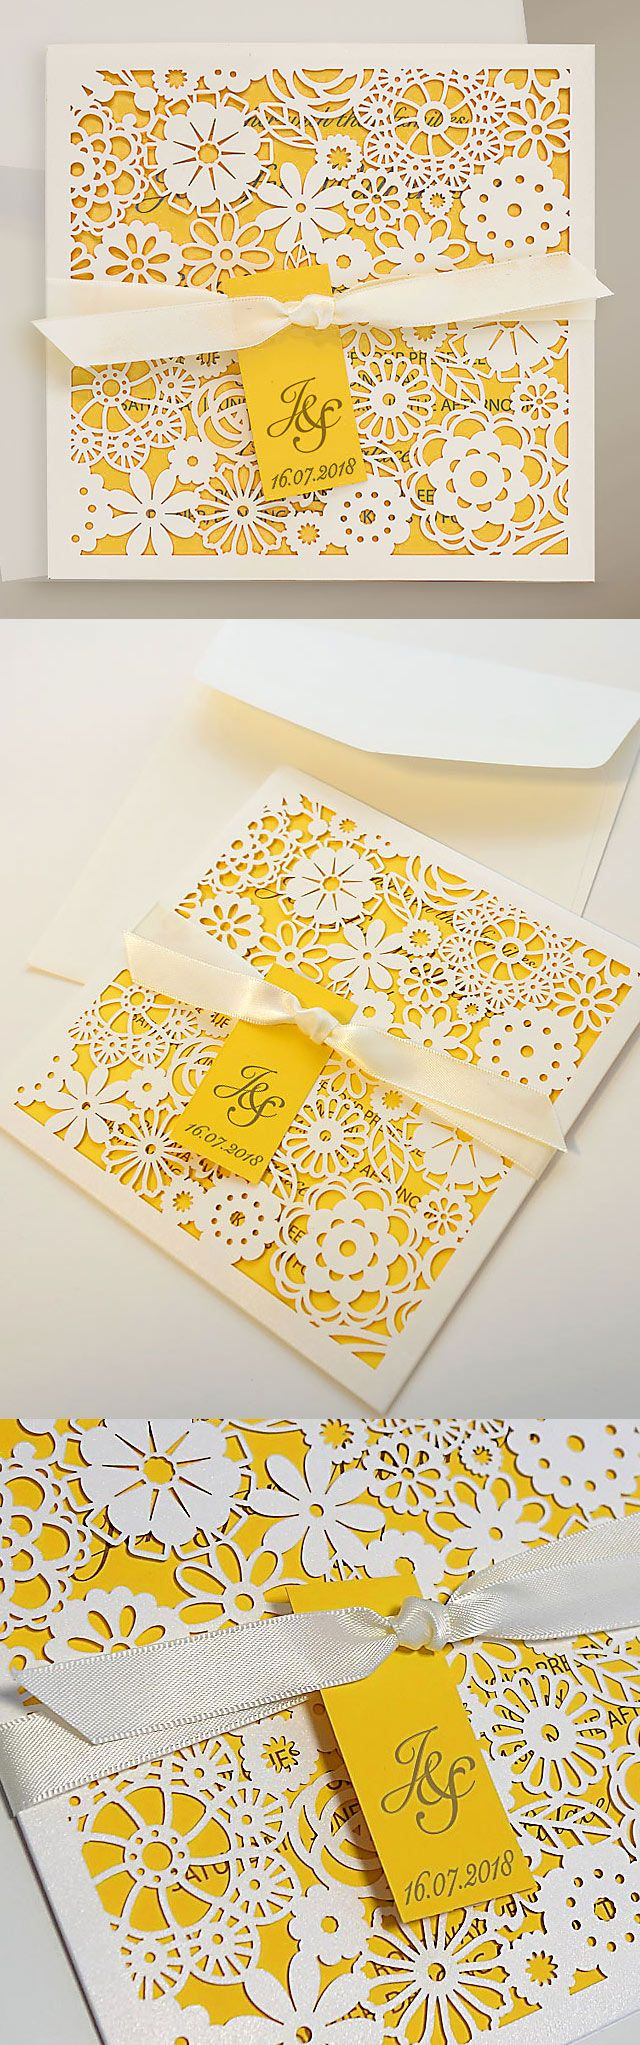 Charming yellow wedding invitations with laser cut floral wallet and tag